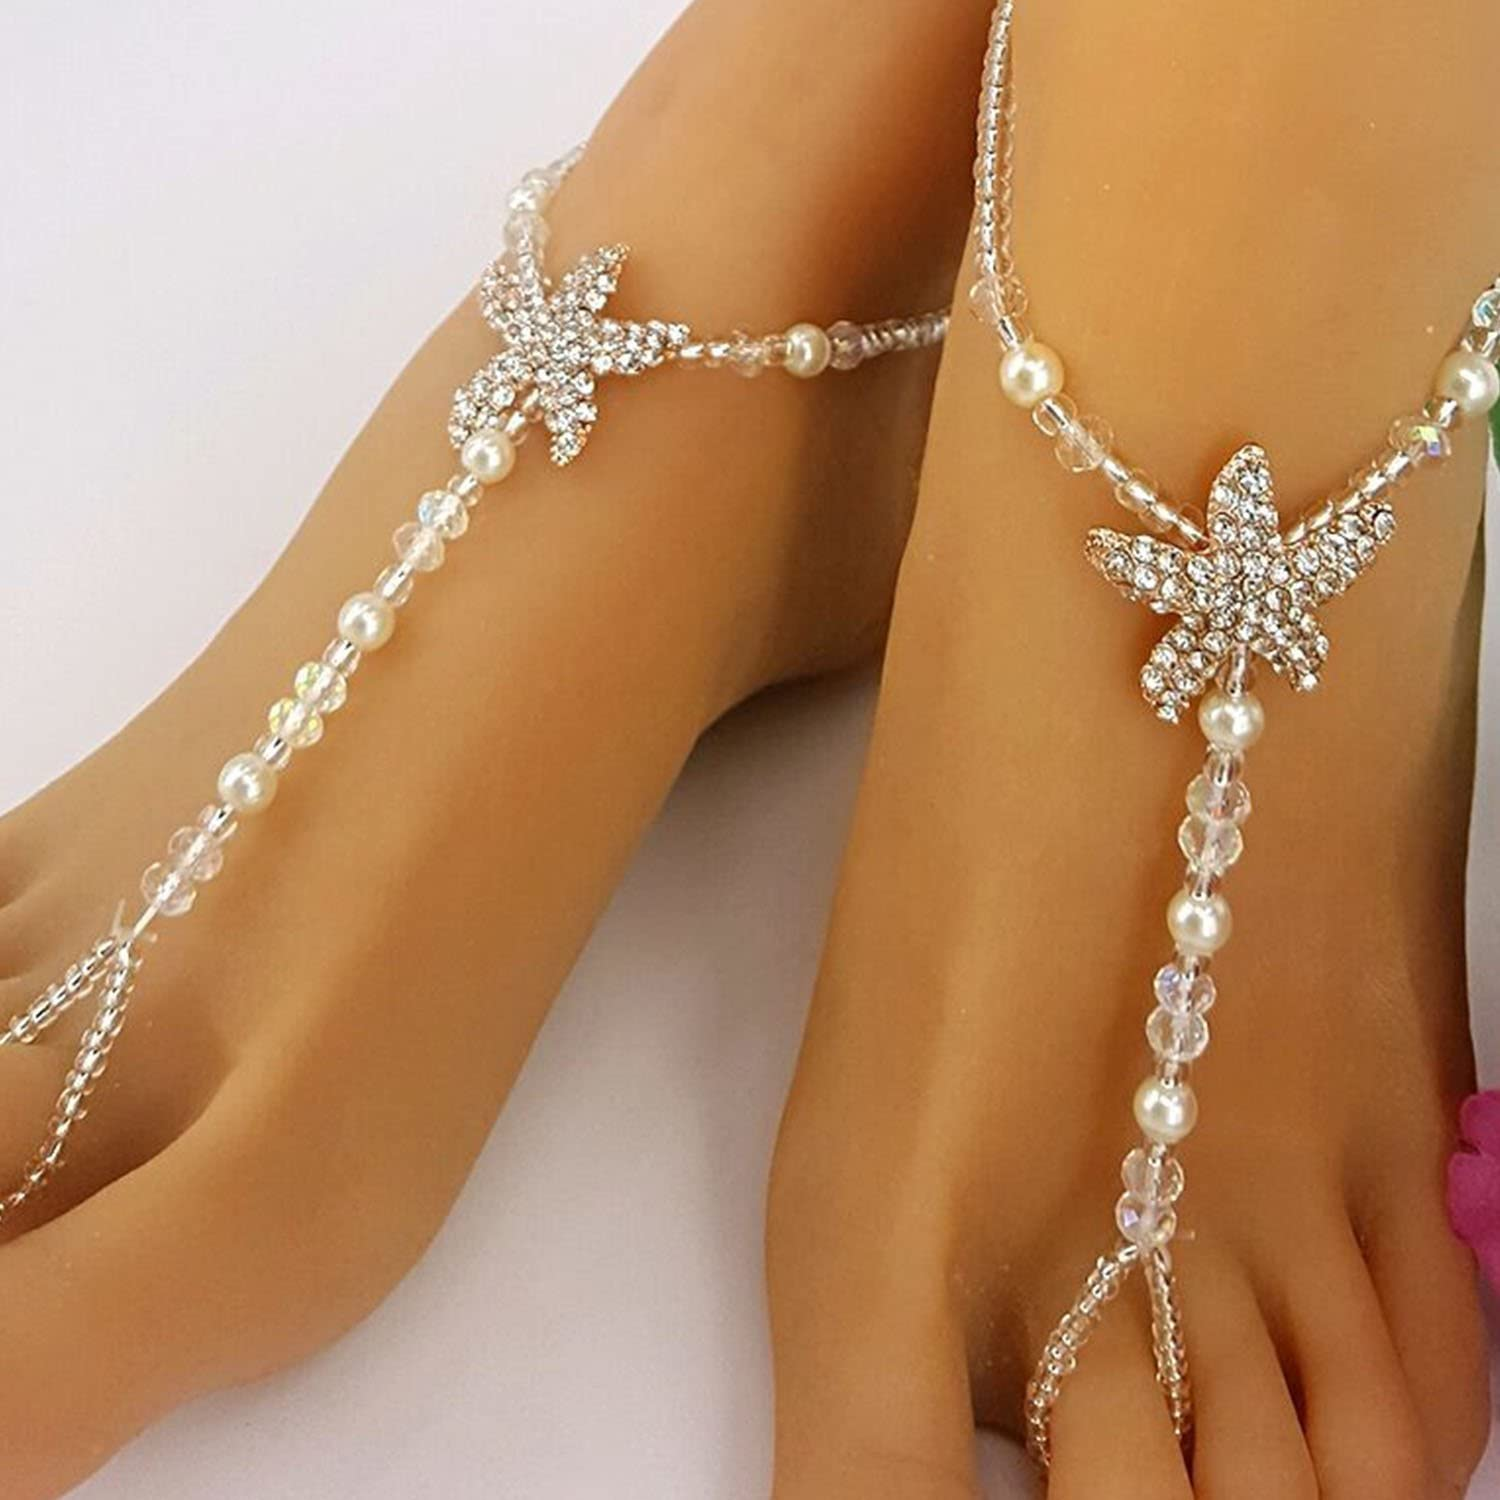 Girl Anklet Butterfly Chain Ankle Bracelet Barefoot Sandal Beach Foot Jewelry LC